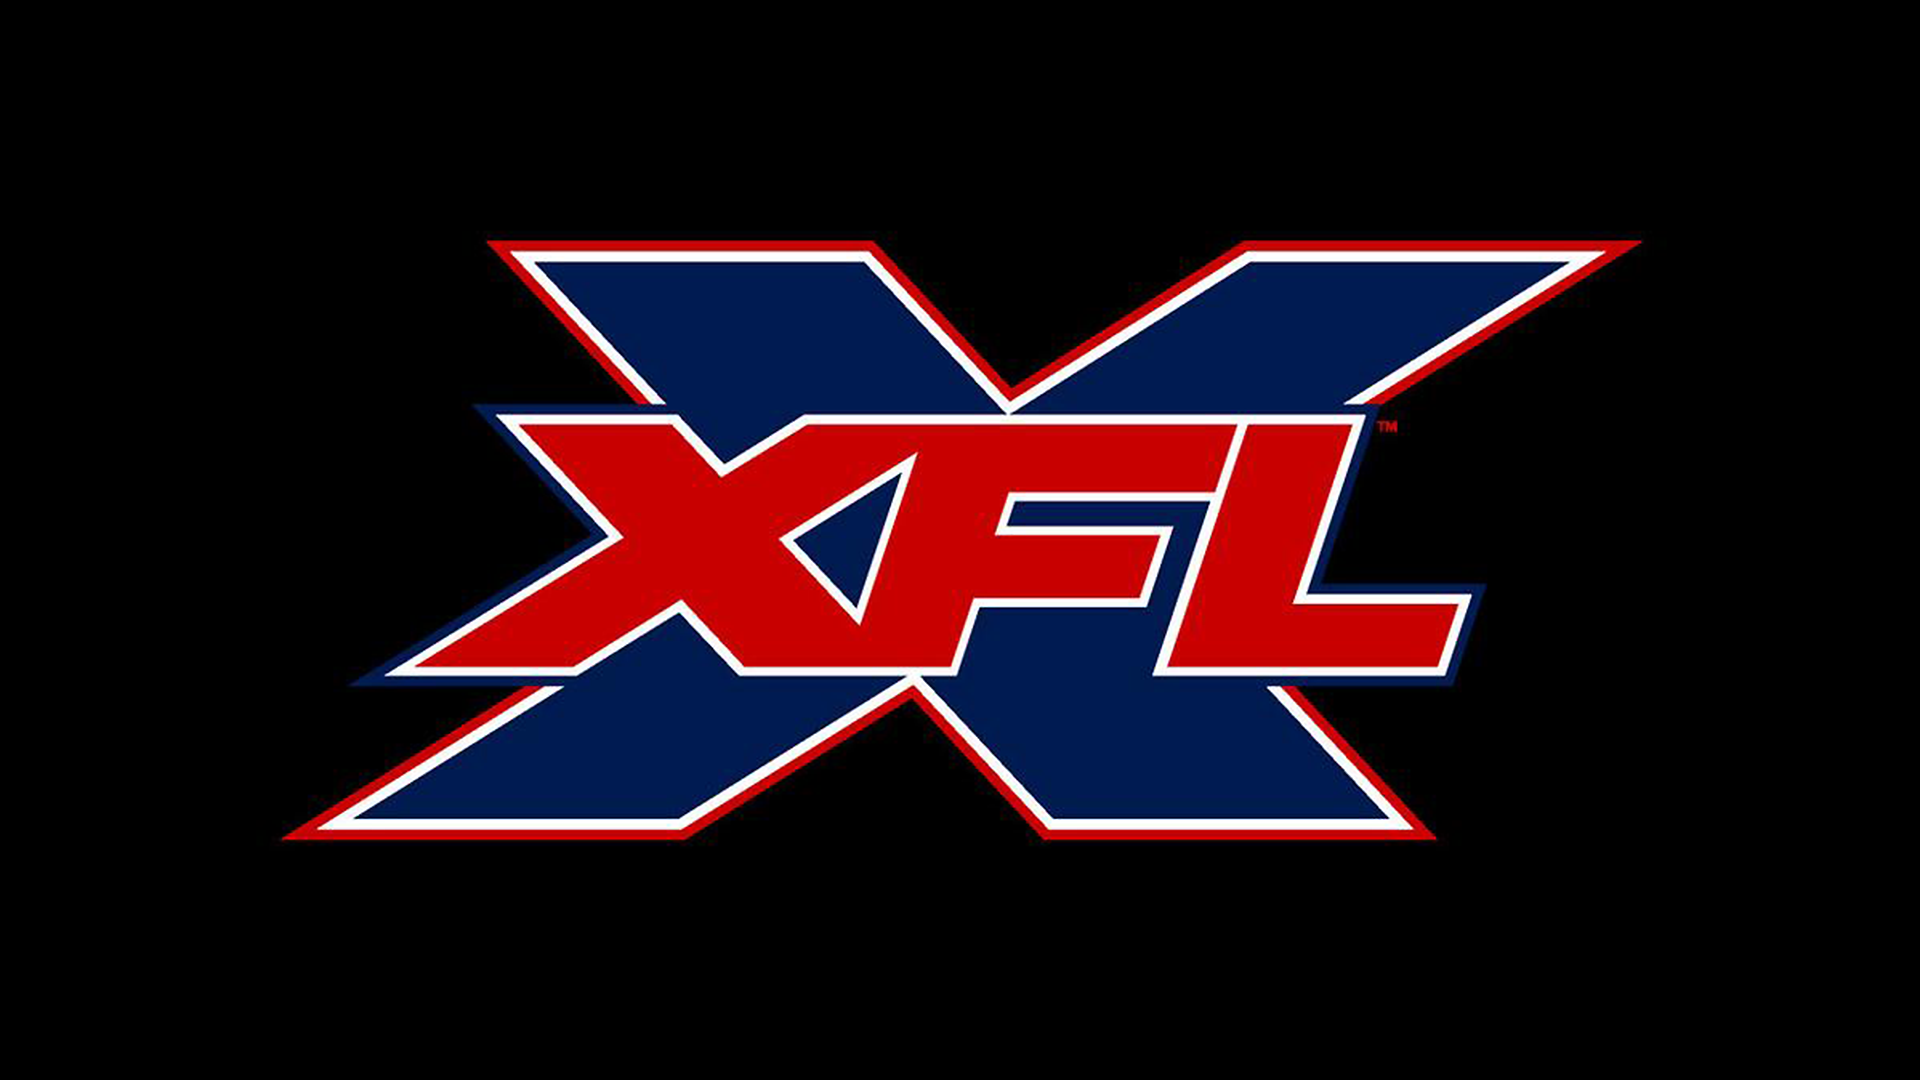 XFL schedule 2020: Date, TV channel and kickoff time for every XFL game